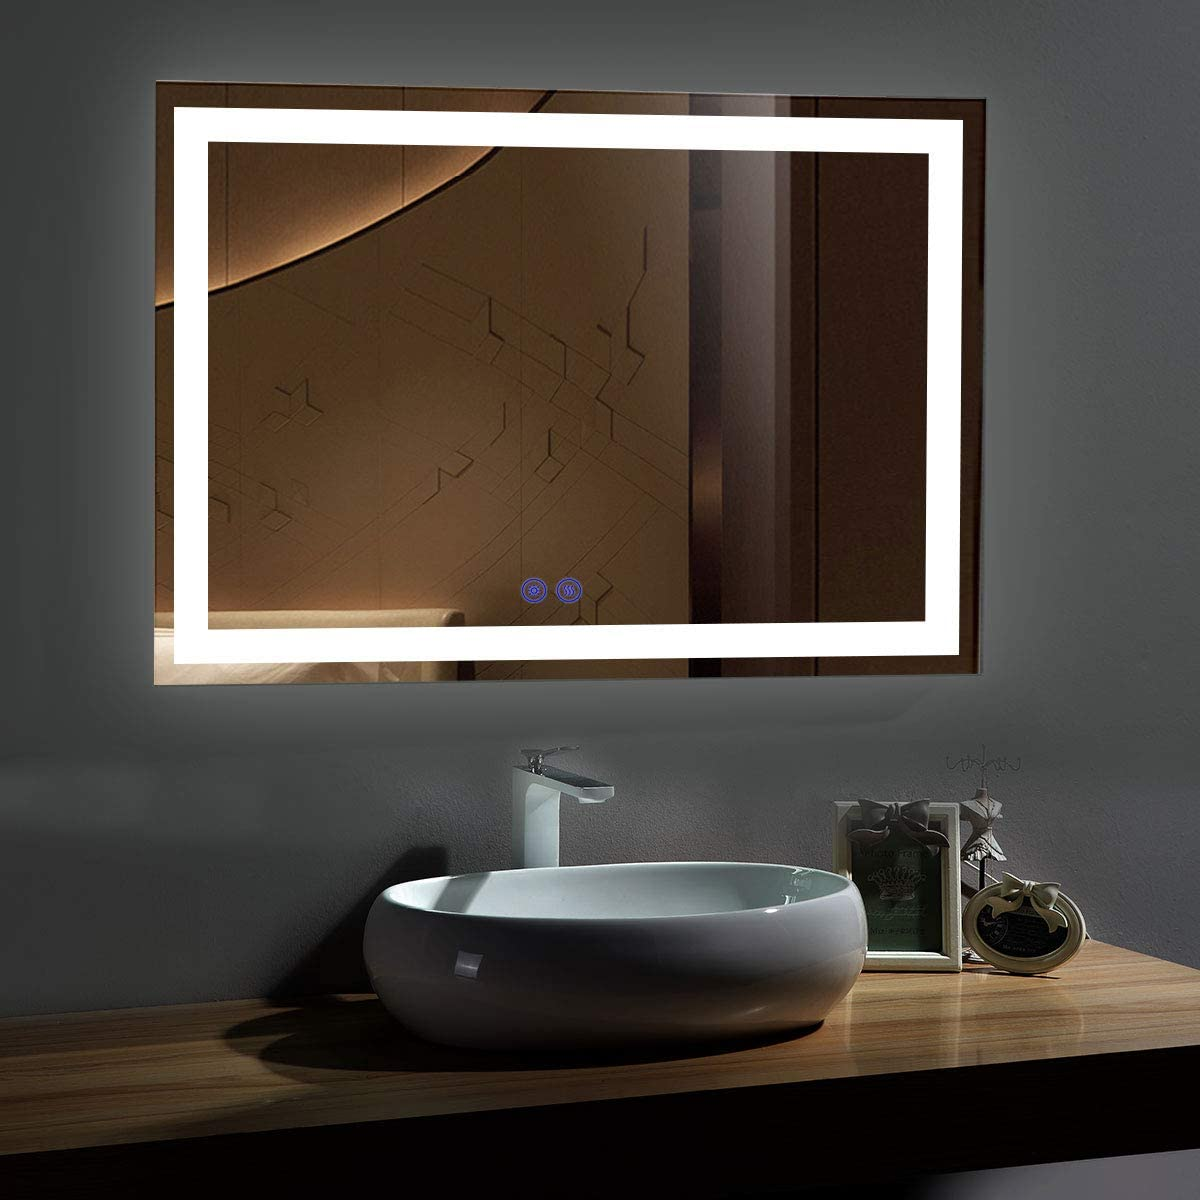 Amazon Com 55 X 36 In Led Bathroom Mirror With Touch Button Anti Fog Dimmable Vertical Horizontal Mount Ck010 5536 Ts Home Kitchen